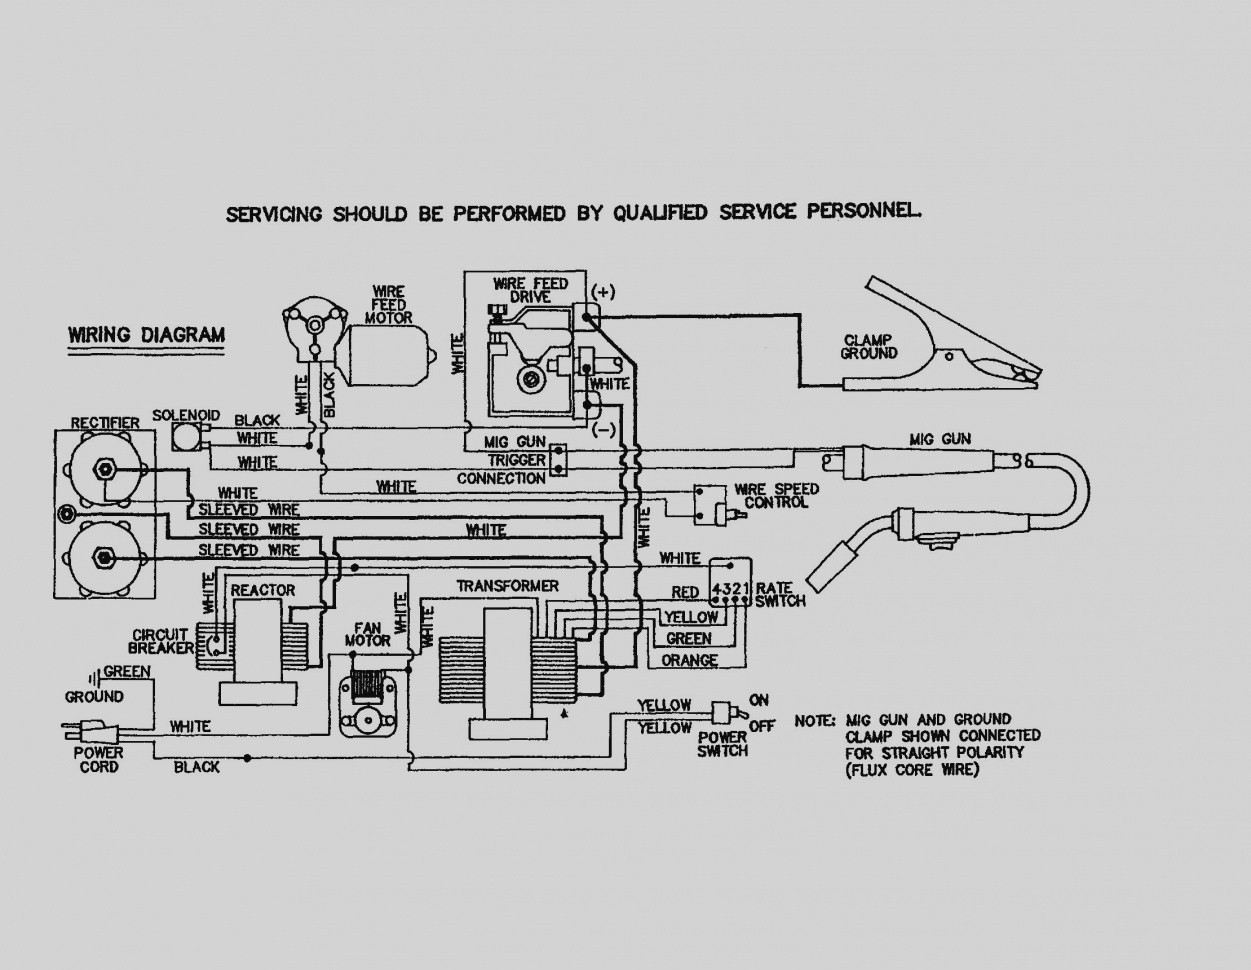 Lincoln Ac Dc 225 125 Welder Wiring Diagram. Lincoln 225